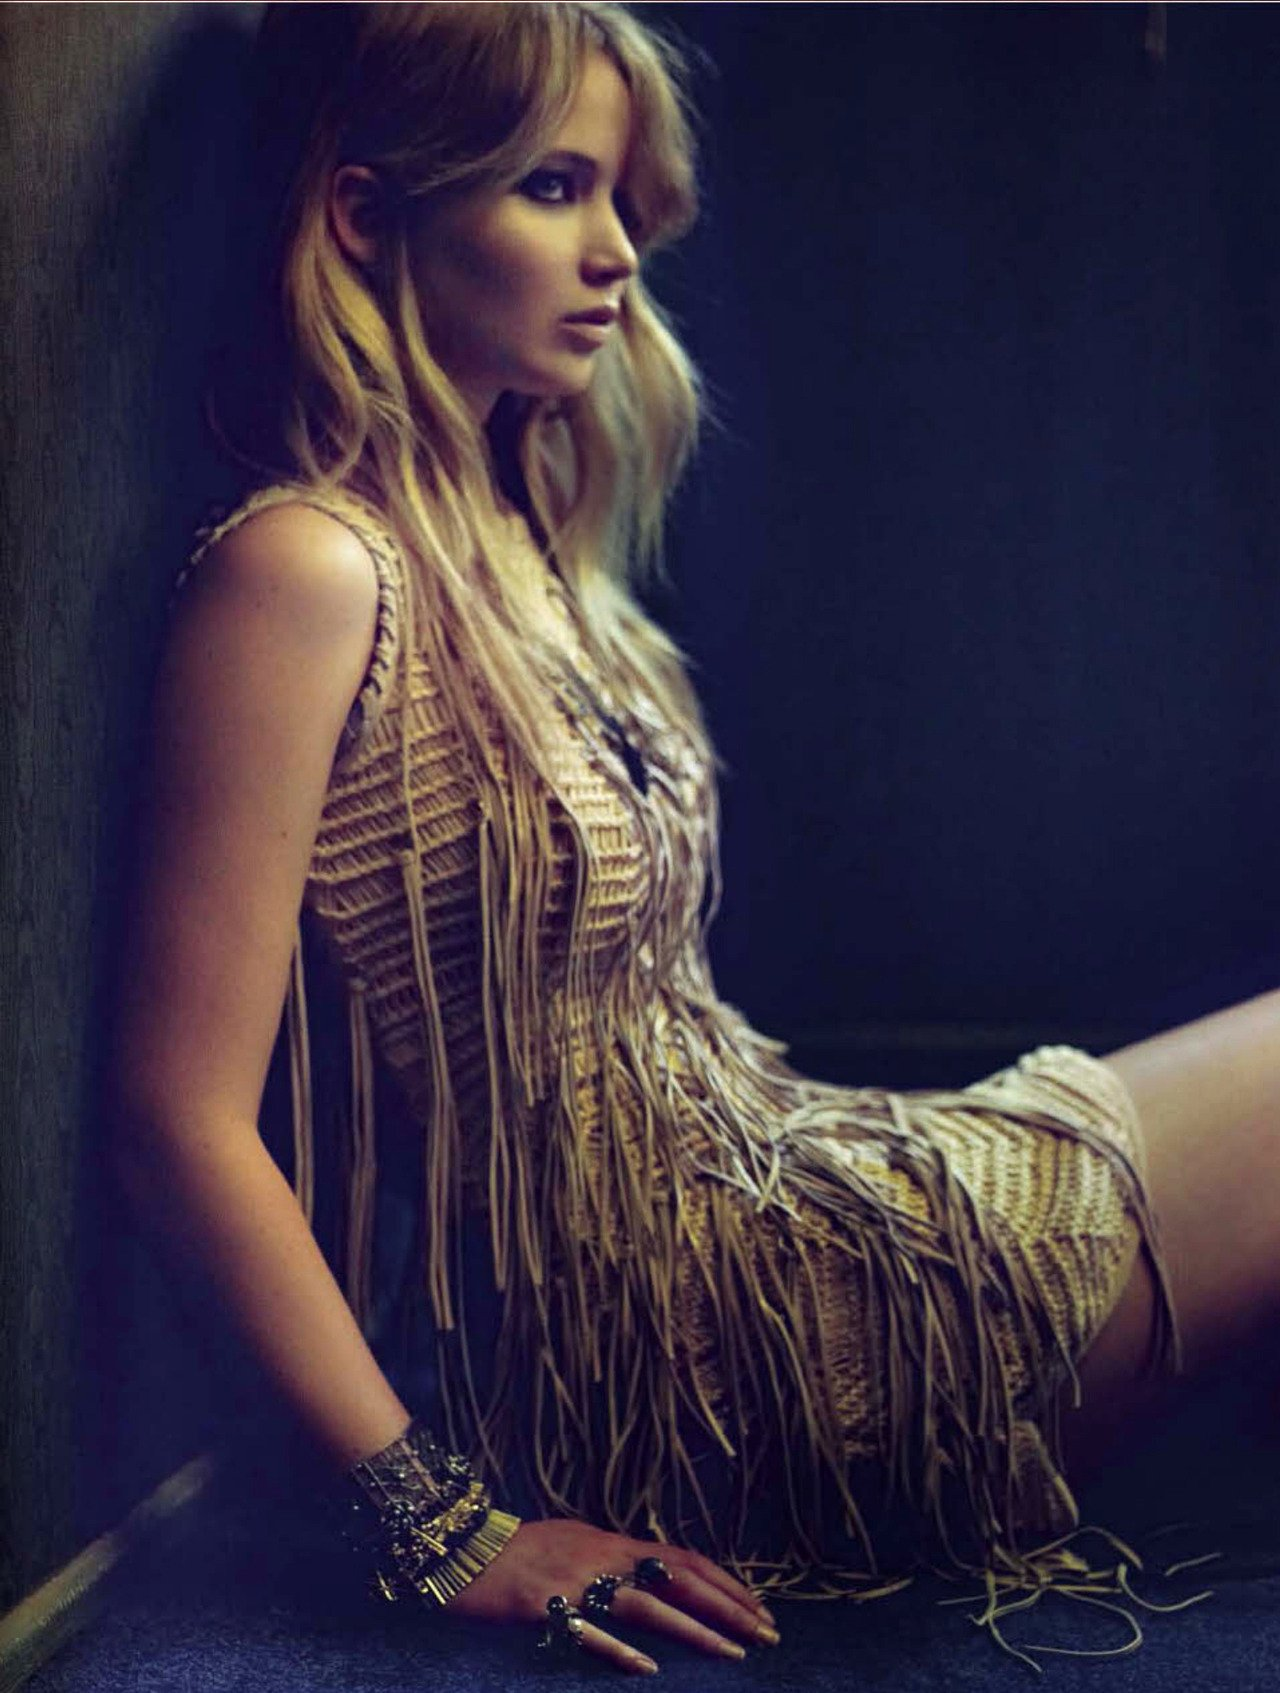 Jennifer Lawrence for Vogue Italy 2012